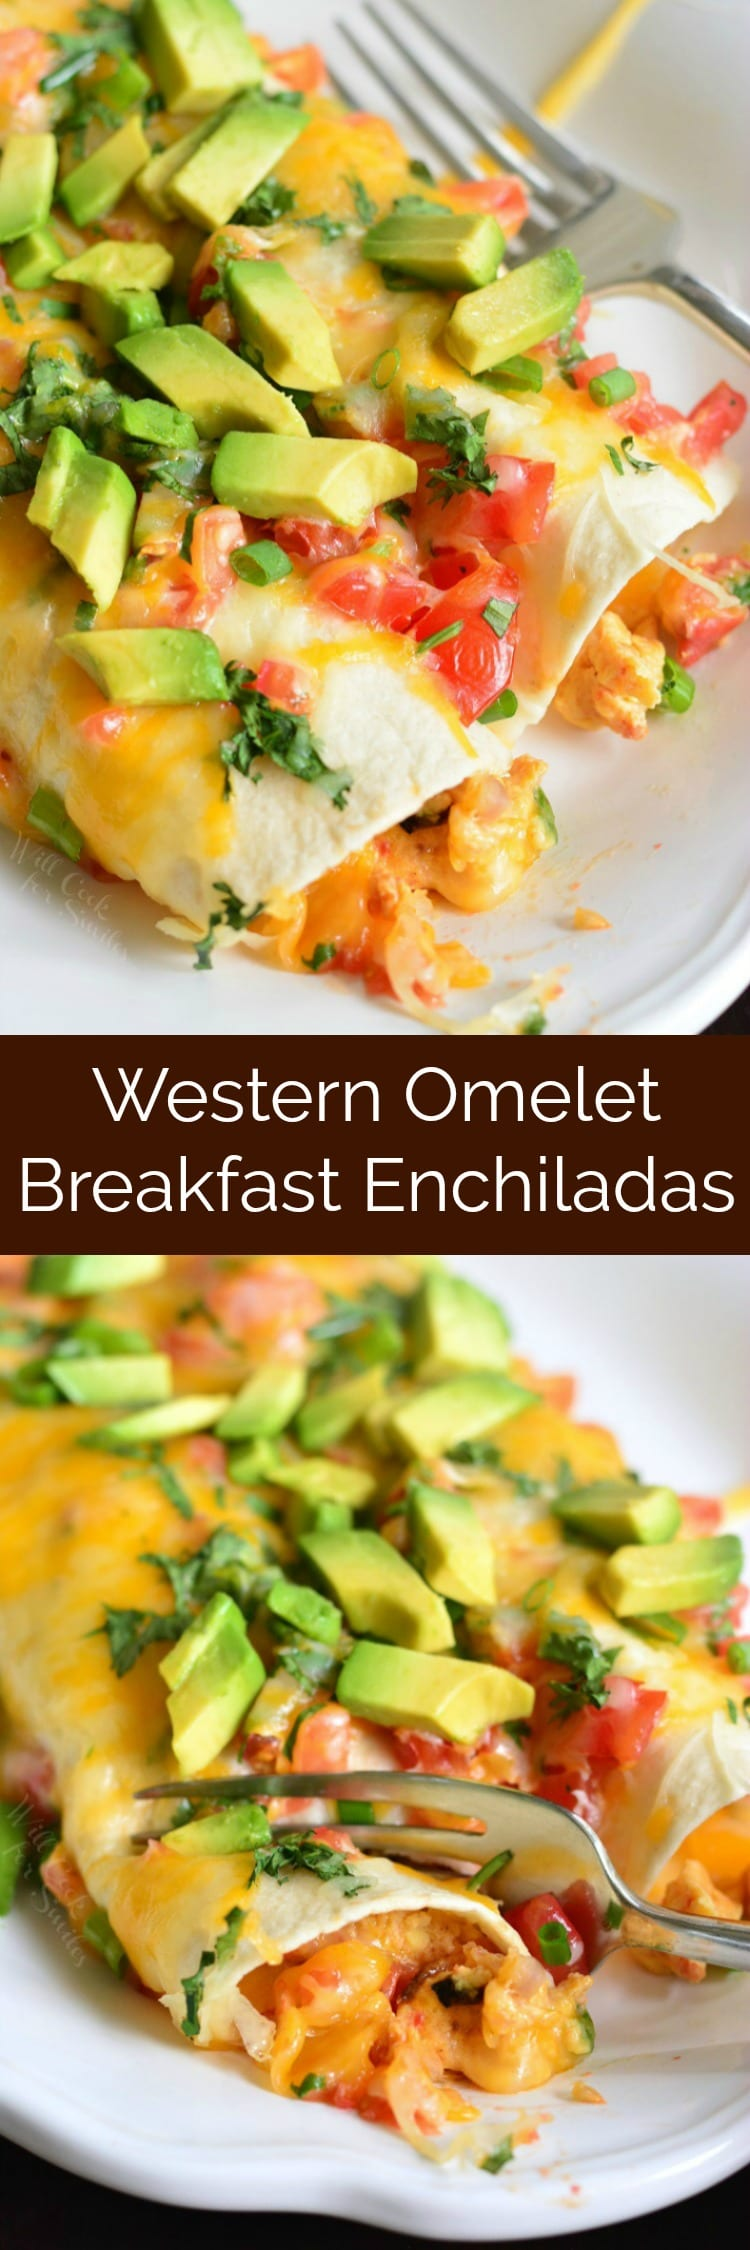 Western Omelet Breakfast Enchiladas. A wonderful breakfast and brunch recipe where soft, fluffy eggs are mixed with veggies and cheese and are rolled in a tortilla and baked with even more cheese and veggies. #enchiladas #breakfastenchiladas #brunchrecipe #eggs